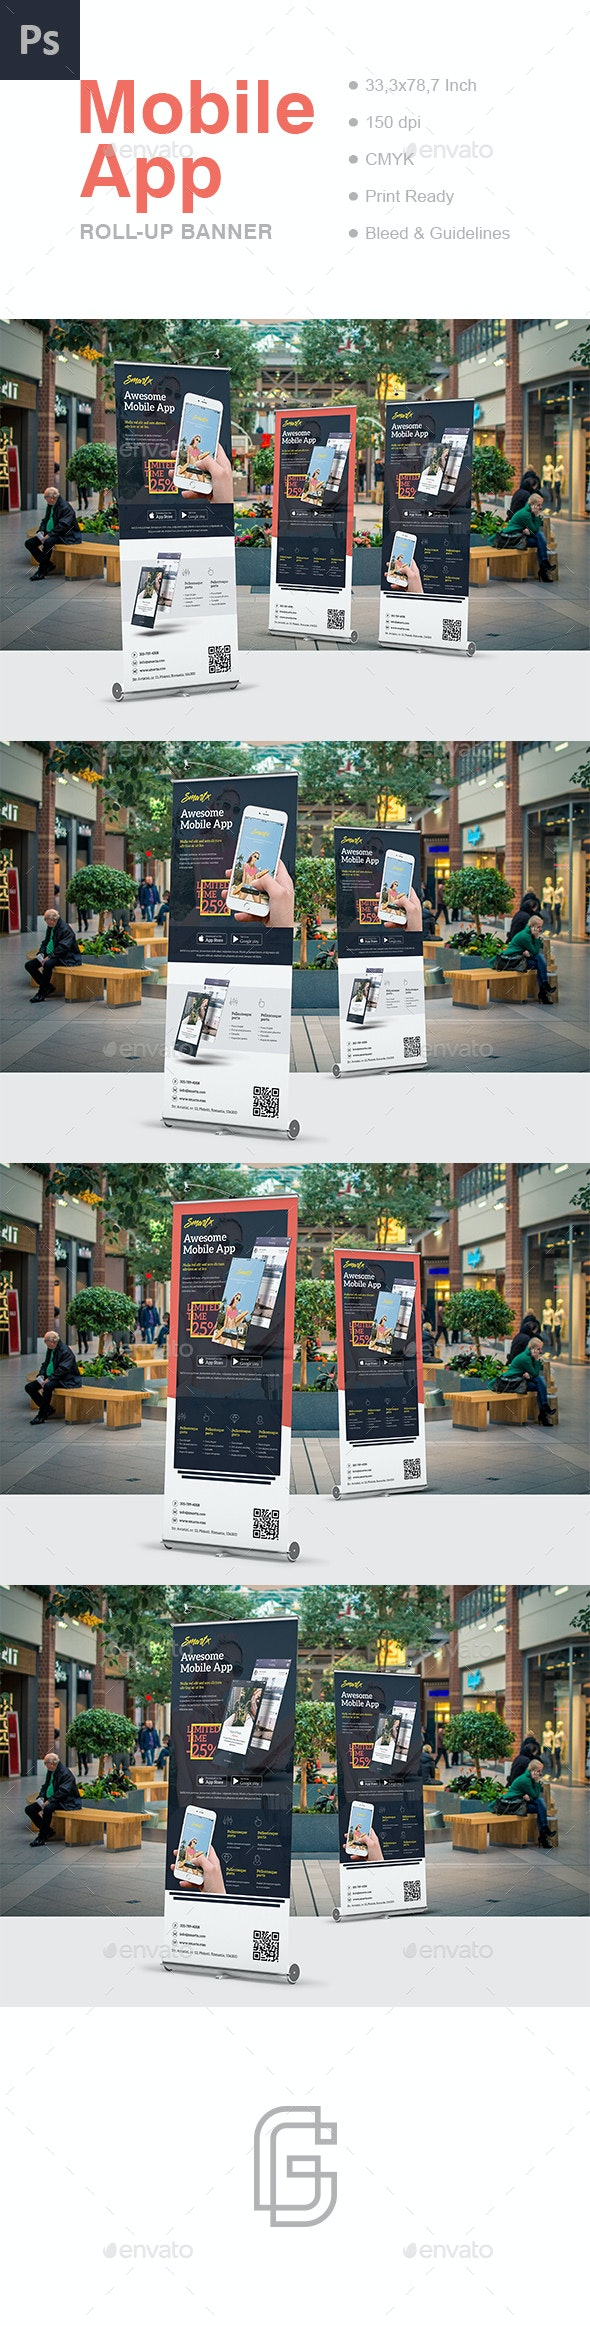 Mobile App Roll-Up Banner Template - Signage Print Templates